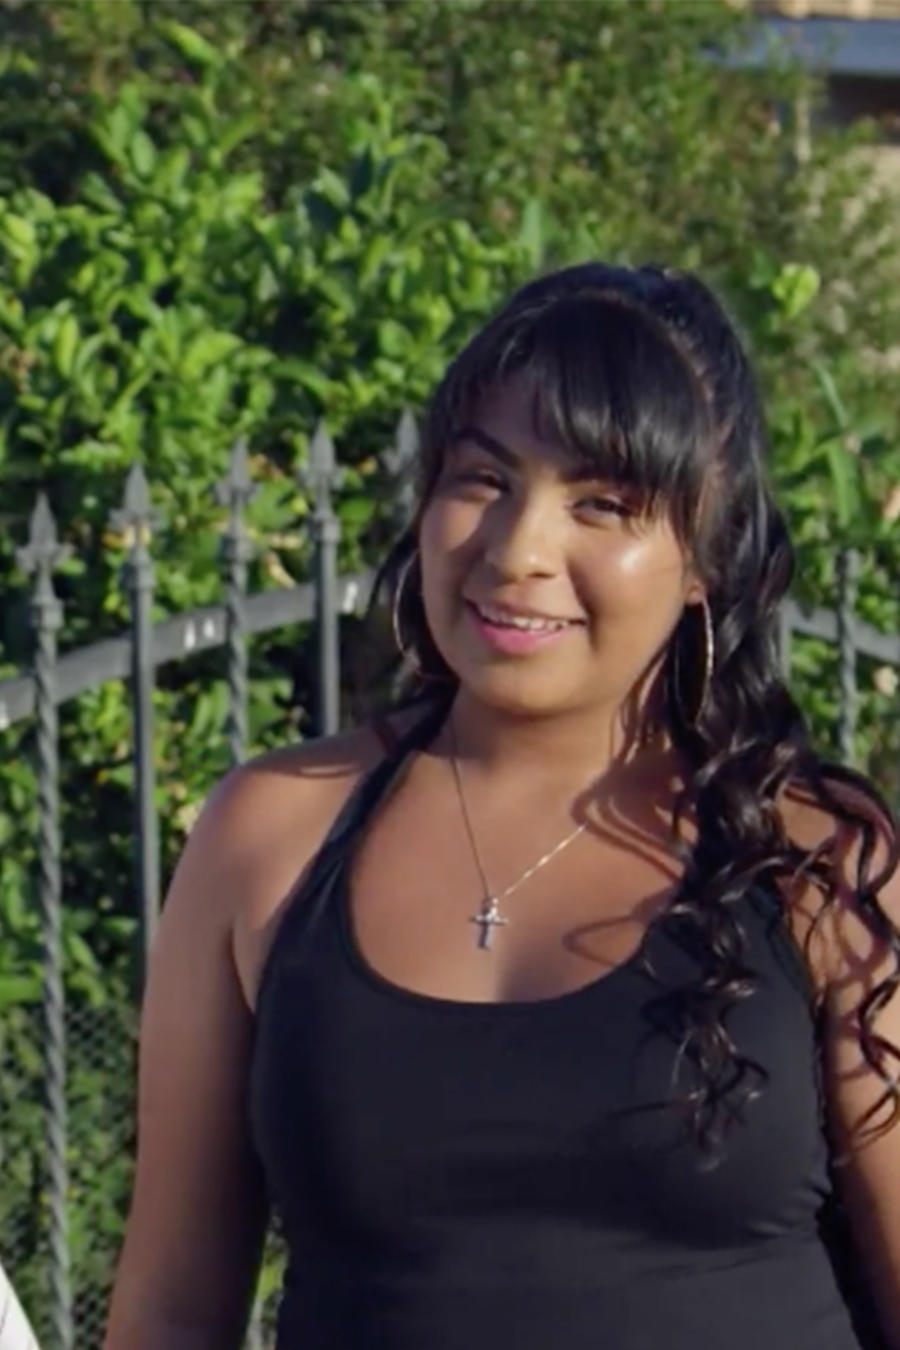 These Two Sisters Prepare for Their Big Party | Quinceañera, Ep. 9